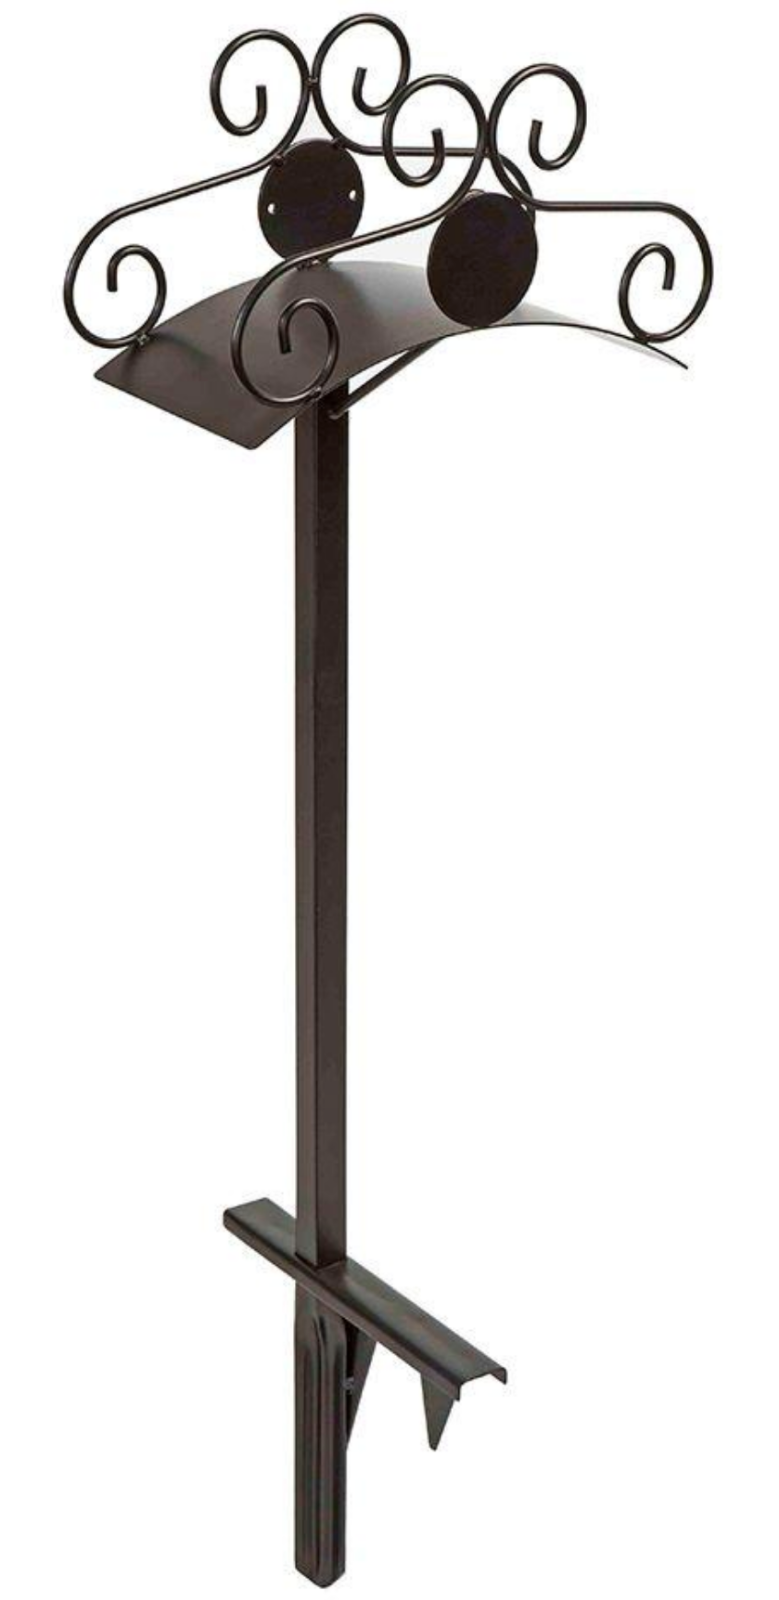 Liberty Garden Products 645 Ornamental 125-Foot Capacity Two